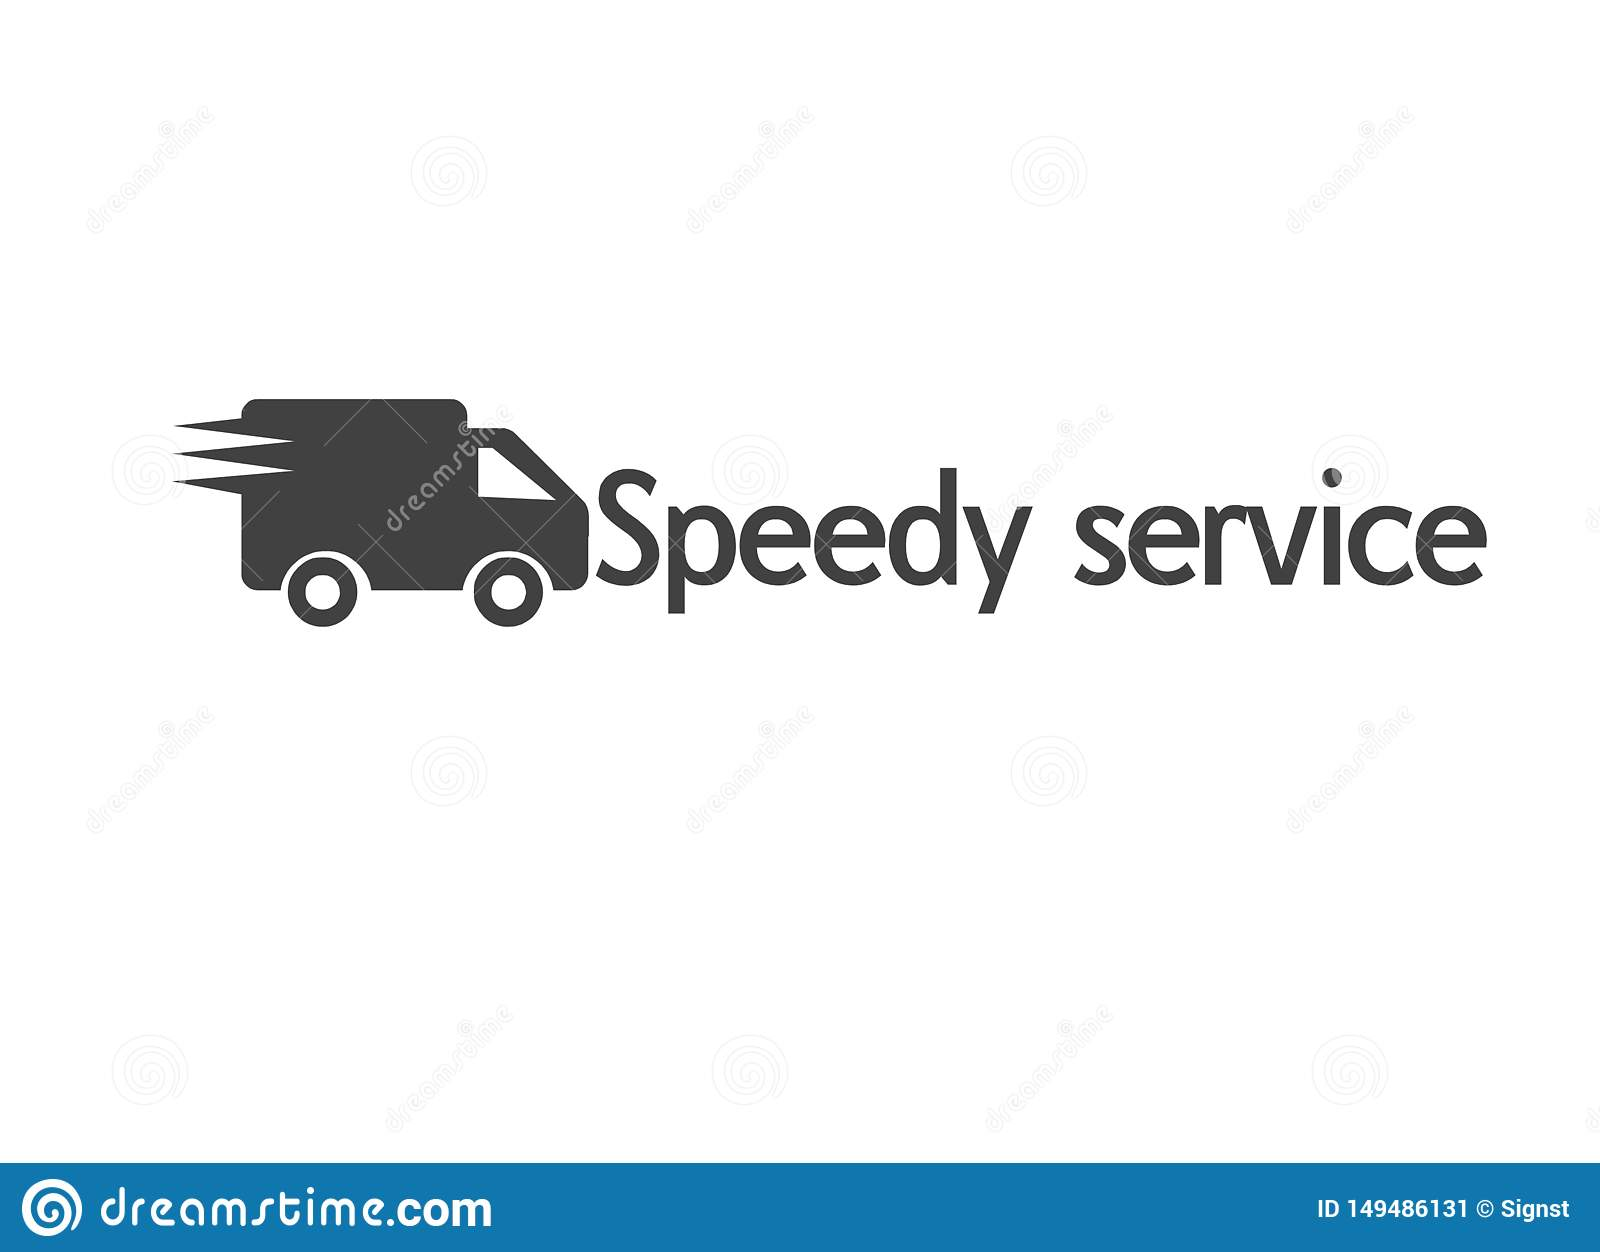 New vectors and logos for